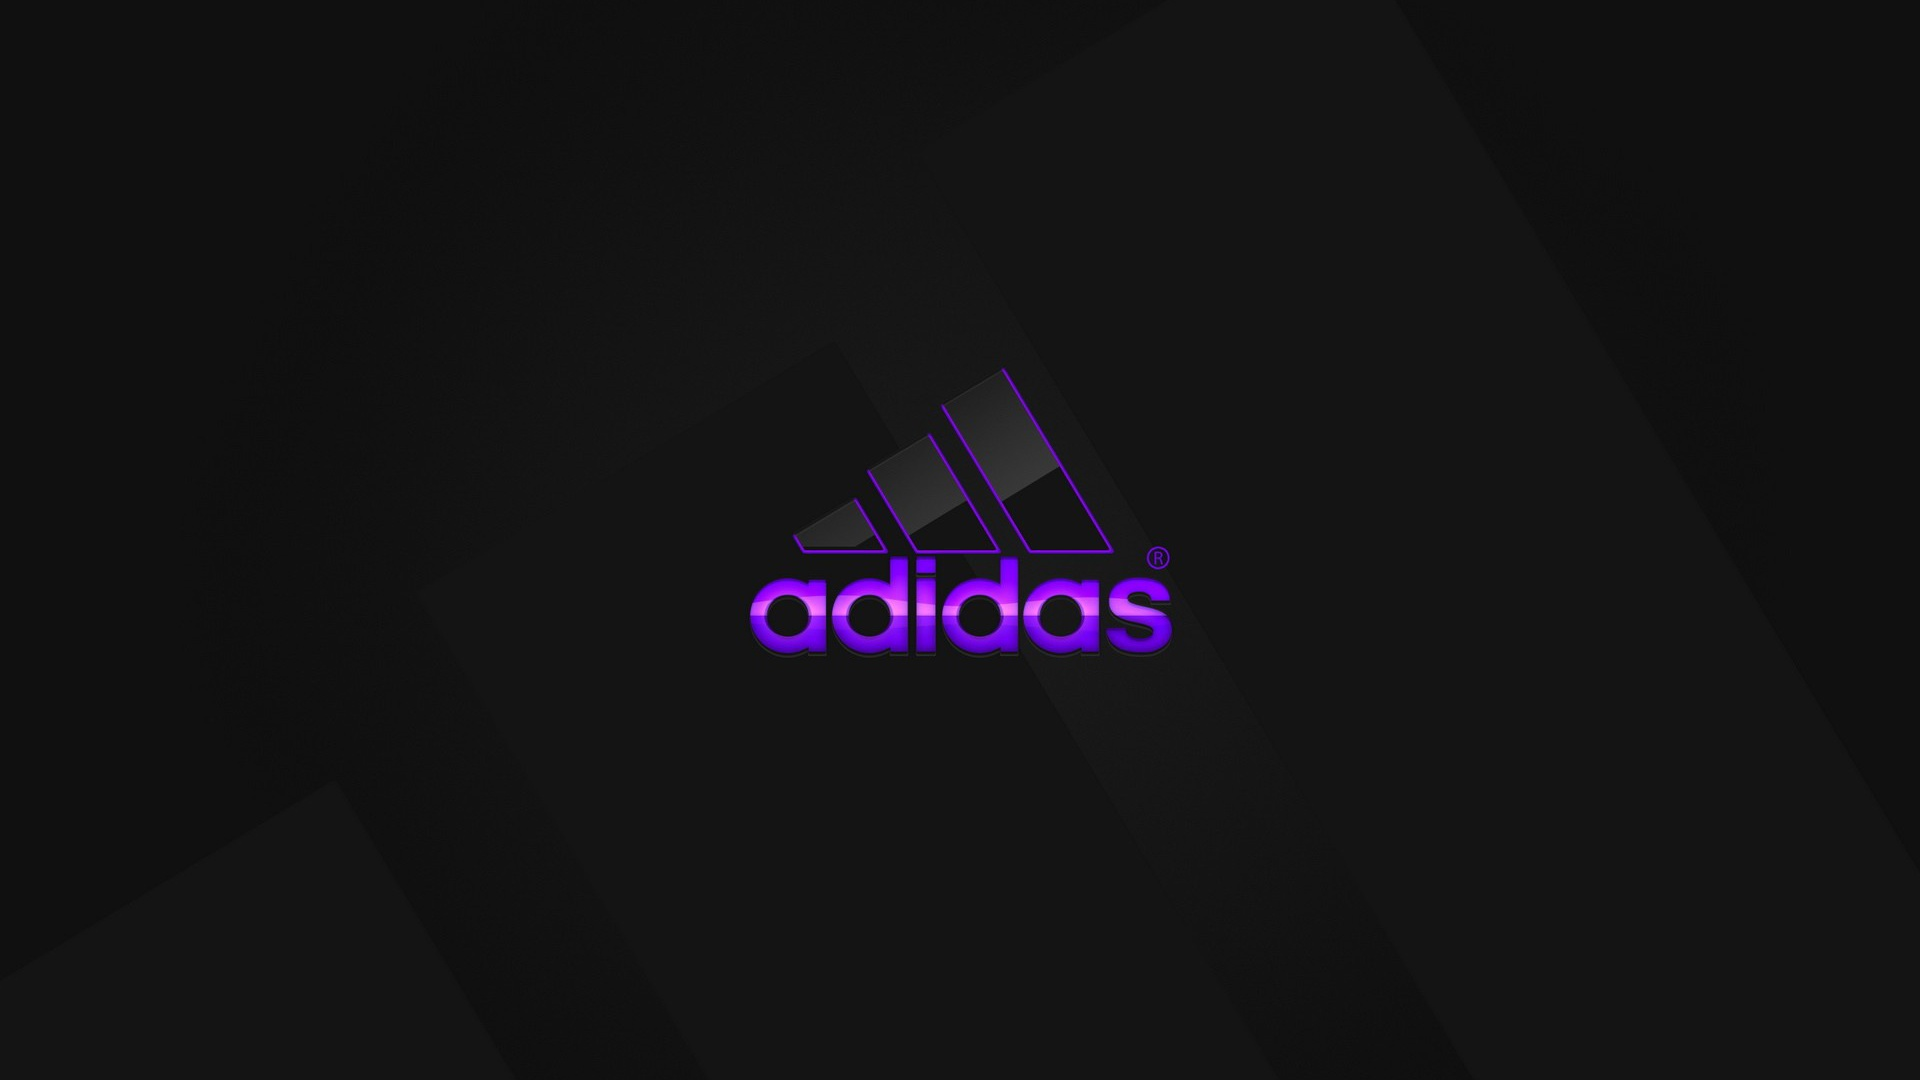 1920x1080 Adidas Brand desktop wallpapers and stock photos 1920x1080